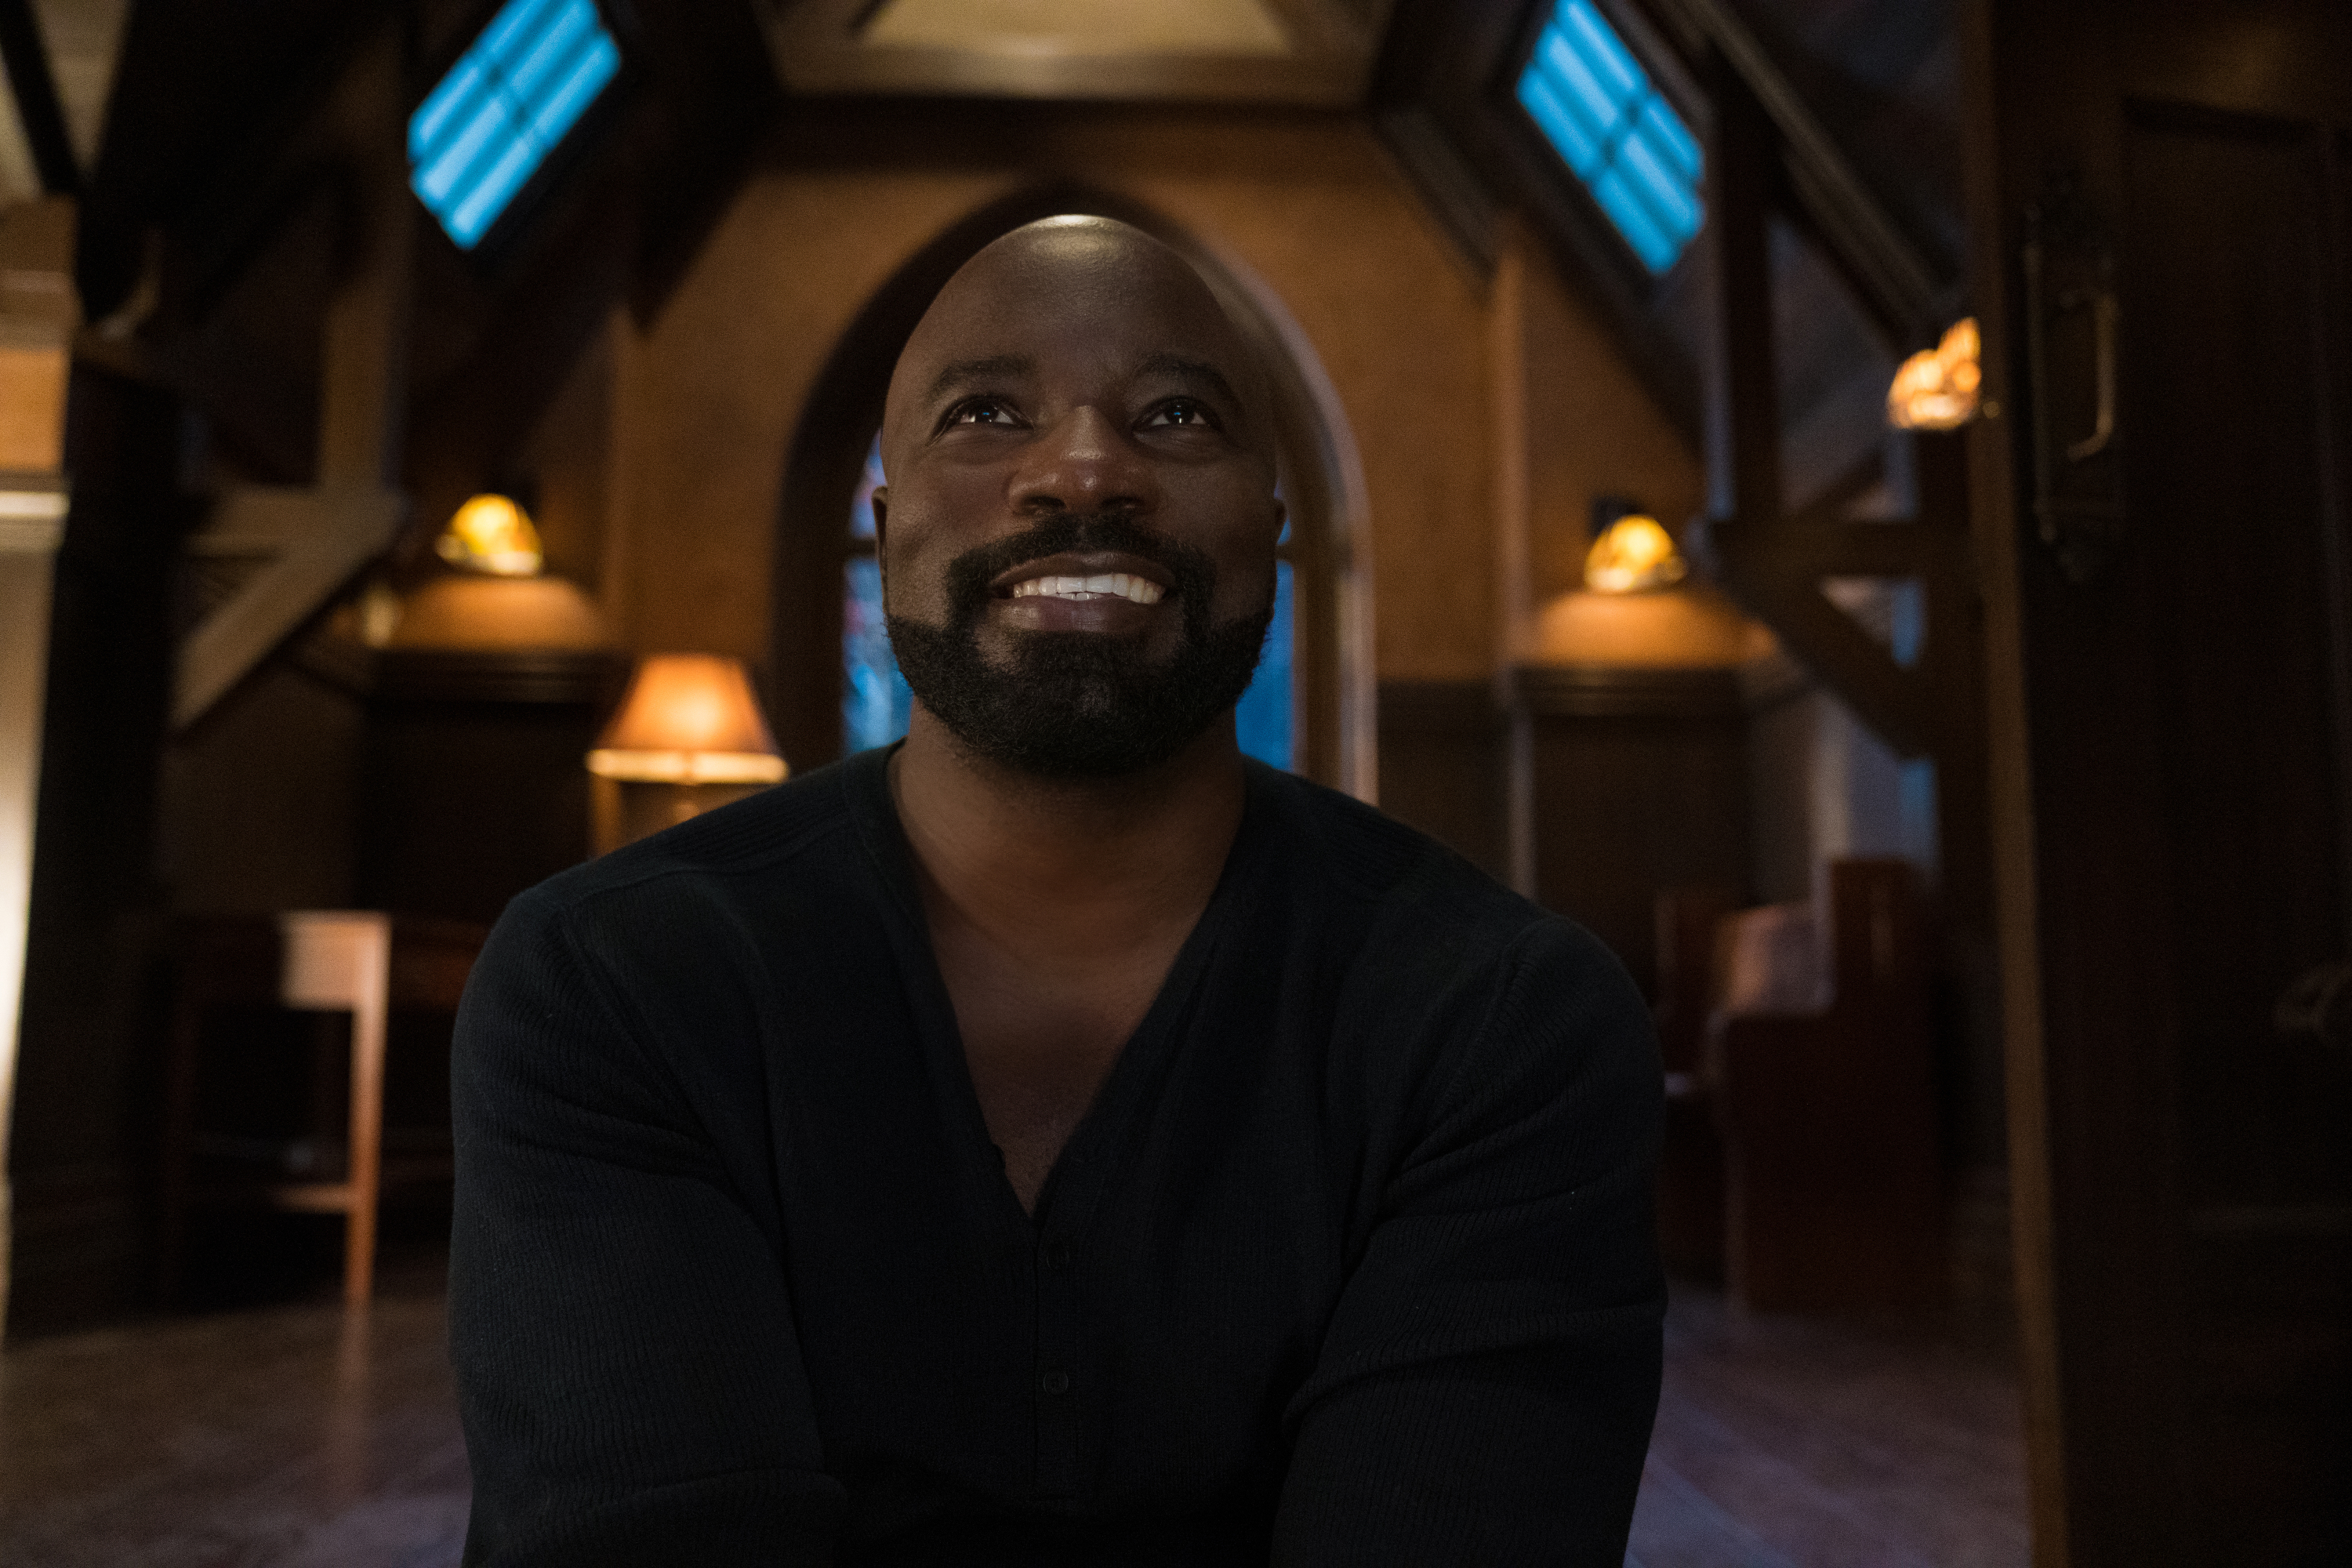 David Acosta (Mike Colter) smiles unsettlingly in a still from season 2 of Evil on Paramount Plus